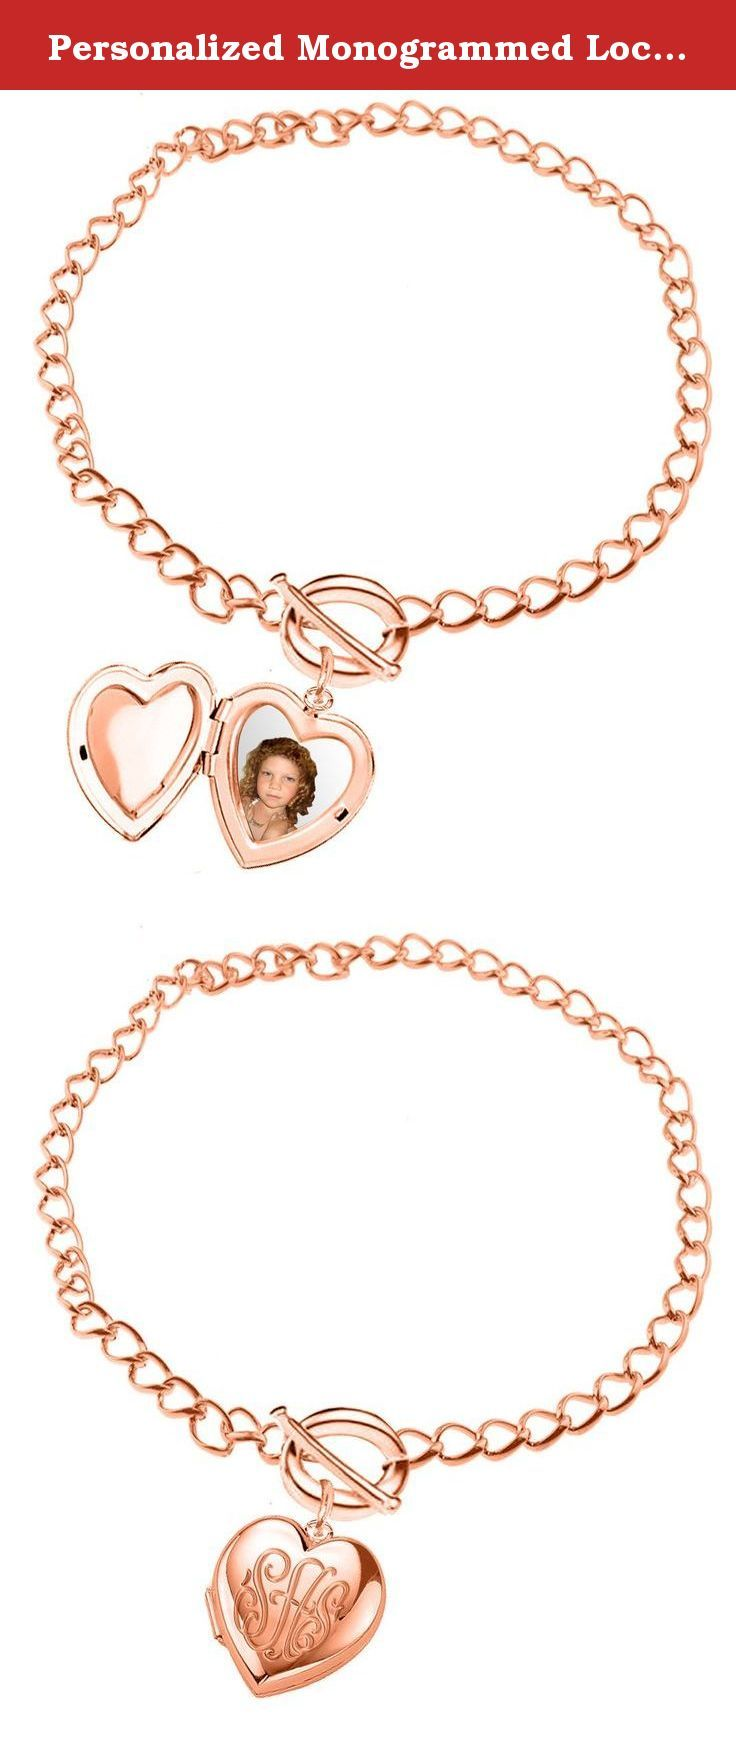 "Personalized Monogrammed Locket Bracelet (Order Any Initials) (7 Inches, 24k Rose Gold Overlay). Order your initials and it will be hand engraved on locket with yellow gold, rose gold or rhodium overlay. Locket opens and holds 2 photos. Locket is about 0.8"" long. Initials measures almost 0.8"" wide. Comes with toggle link chain. Choose bracelet length. How to order: Option1: Send us your desired initials using ""Note"" section at the time of the checkout Option 2: email us all details with..."